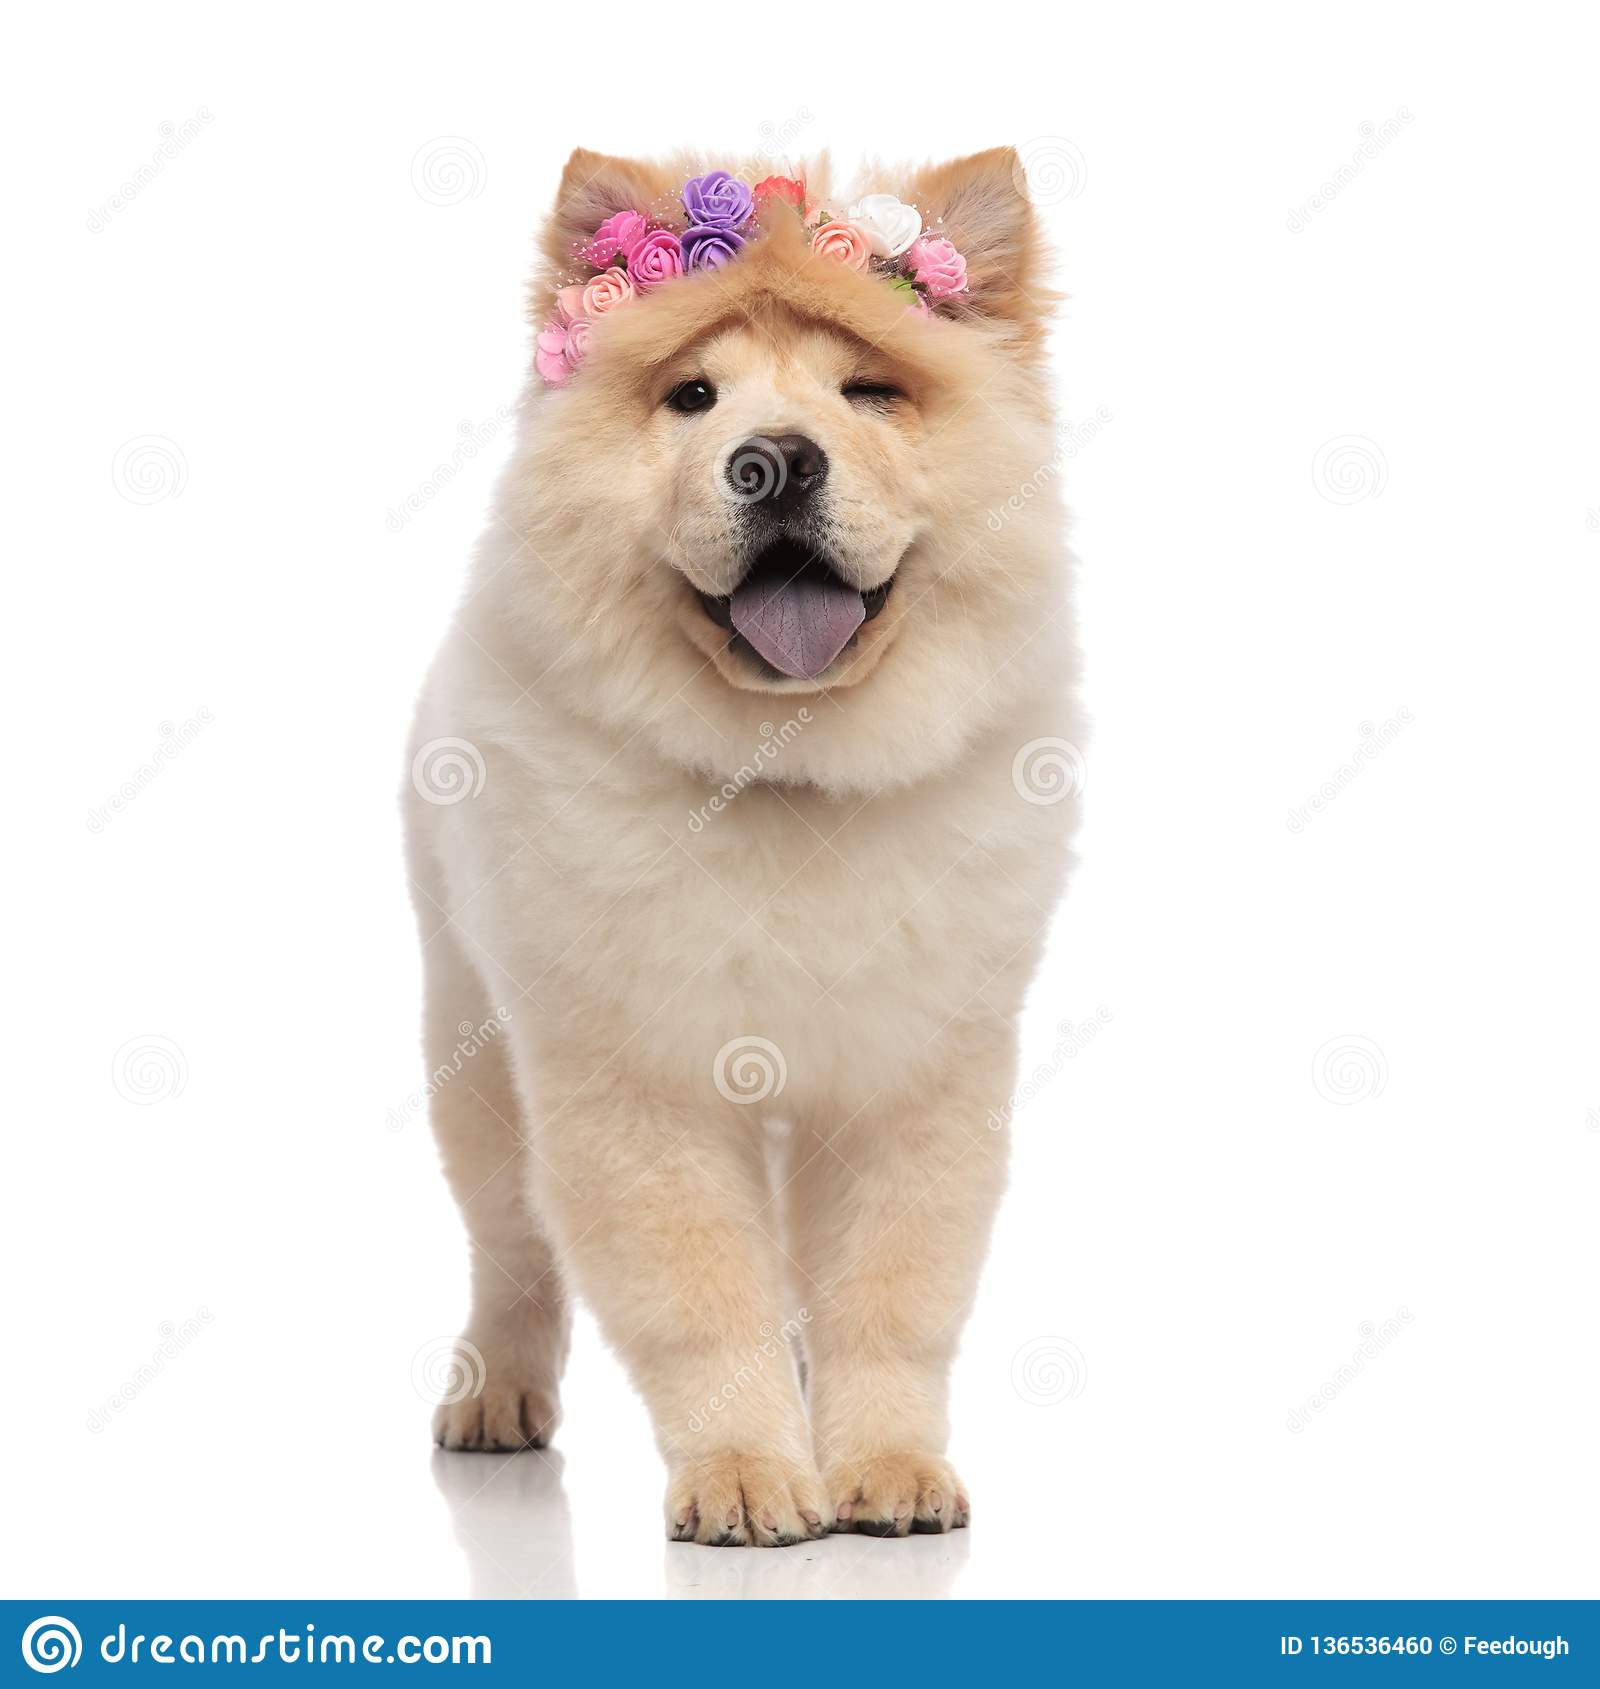 Adorable chow chow wearing fresh flowers headband panting and winking